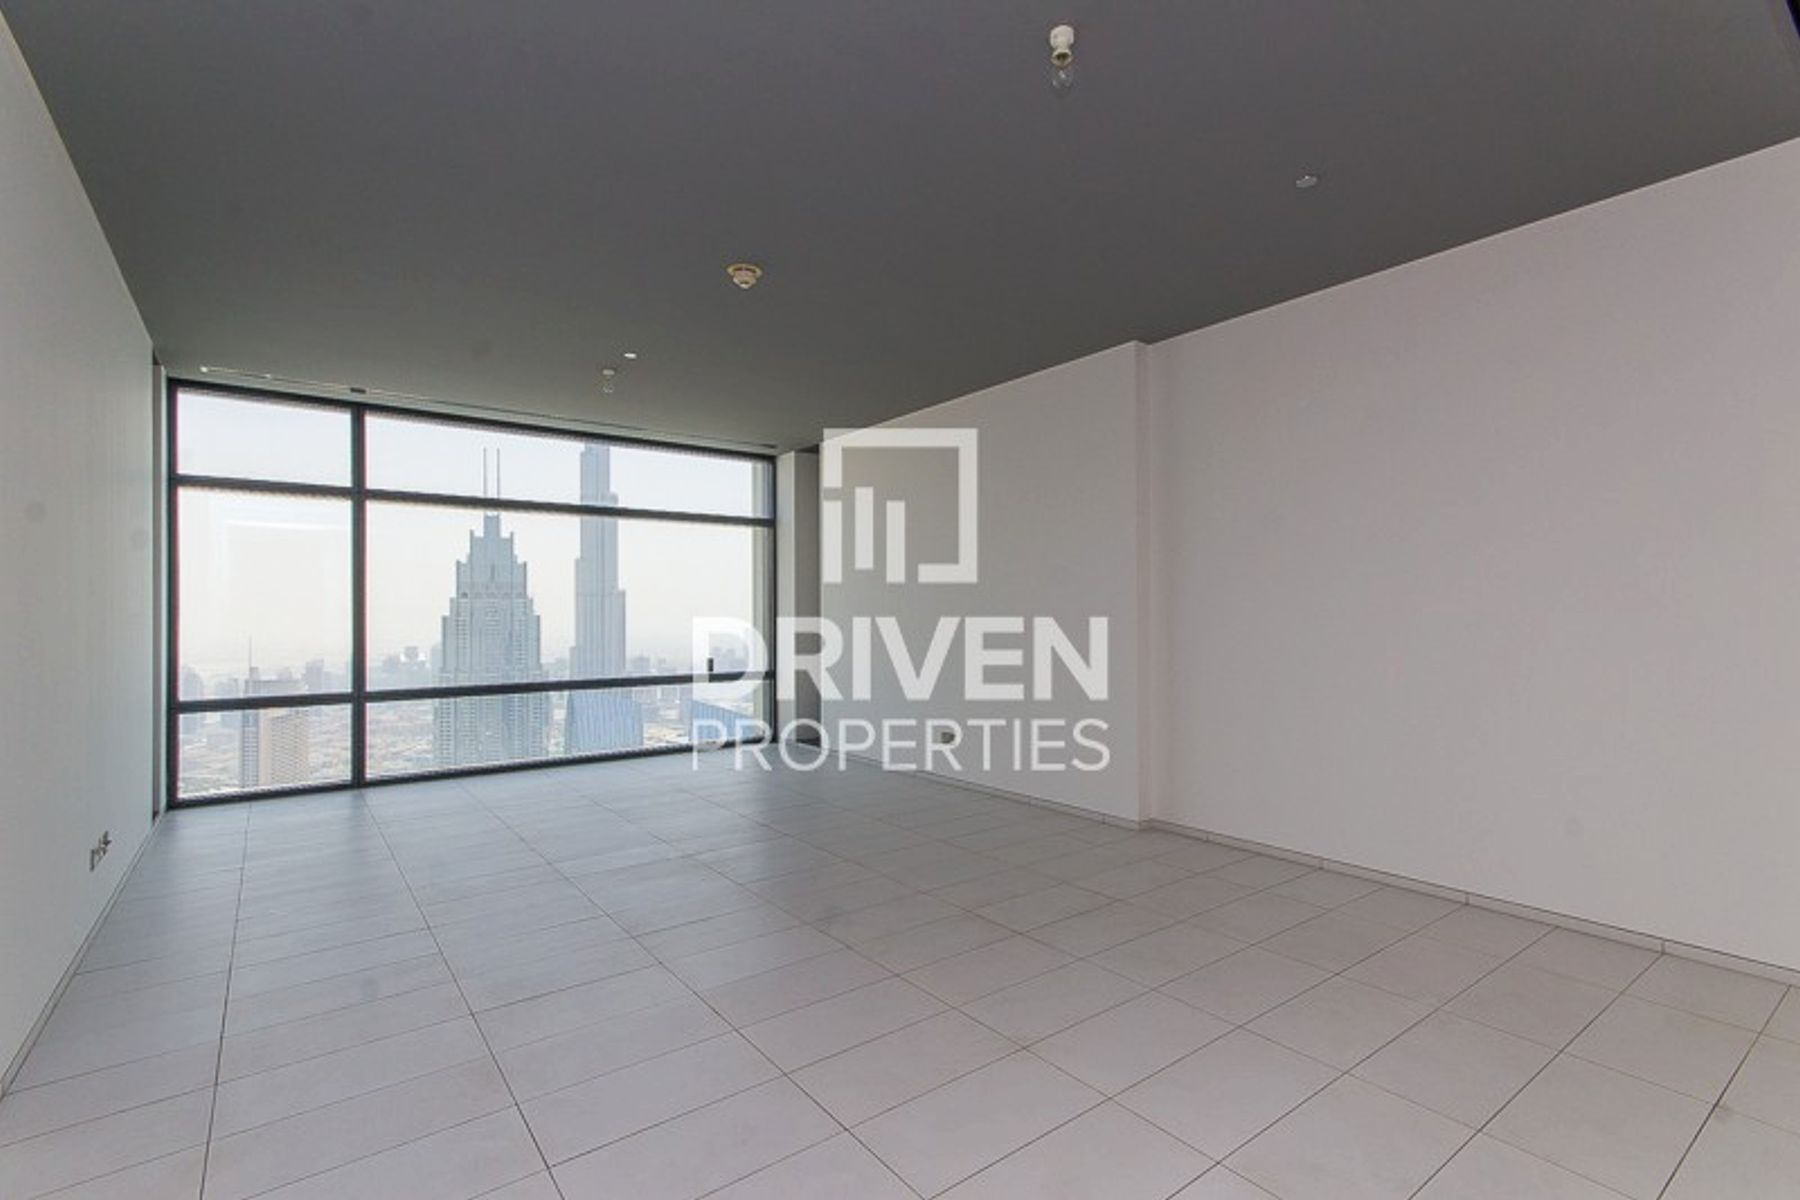 2 Bed plus Storage room, Facing Burj Khalifa